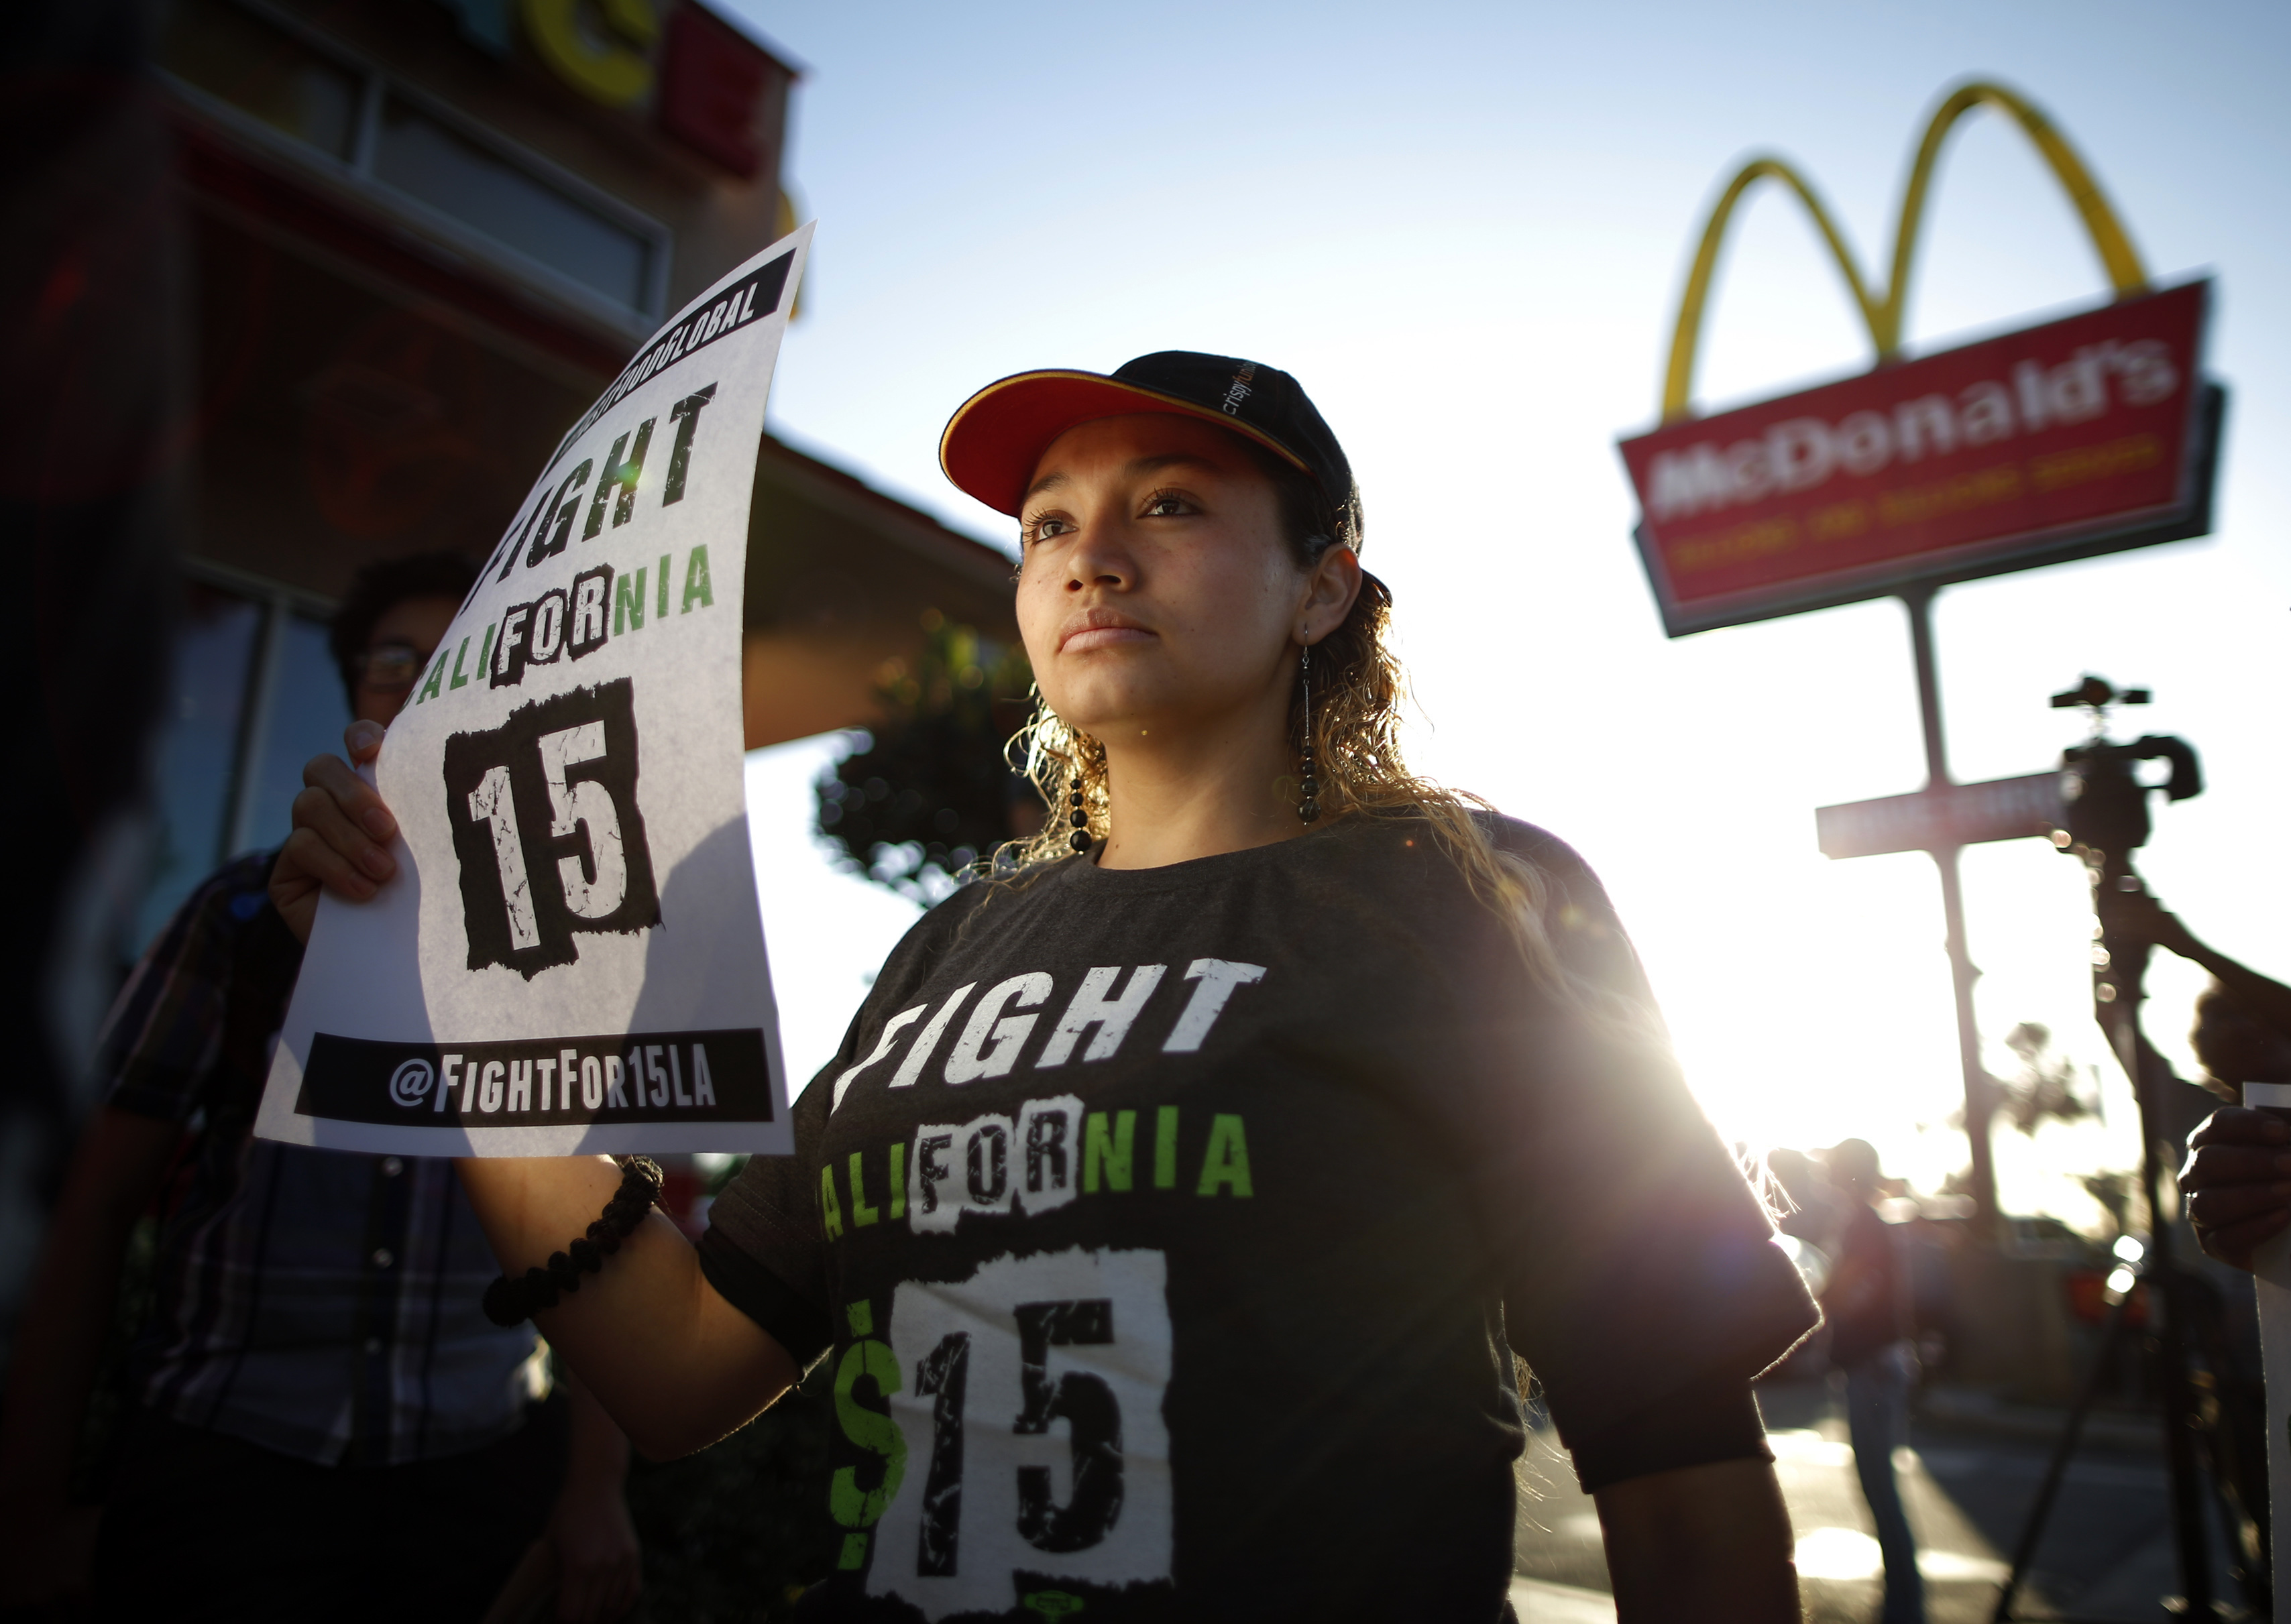 Los Angeles: Demonstrators take part in a protest to demand higher wages for fast-food workers outside McDonald's on May 15, 2014.